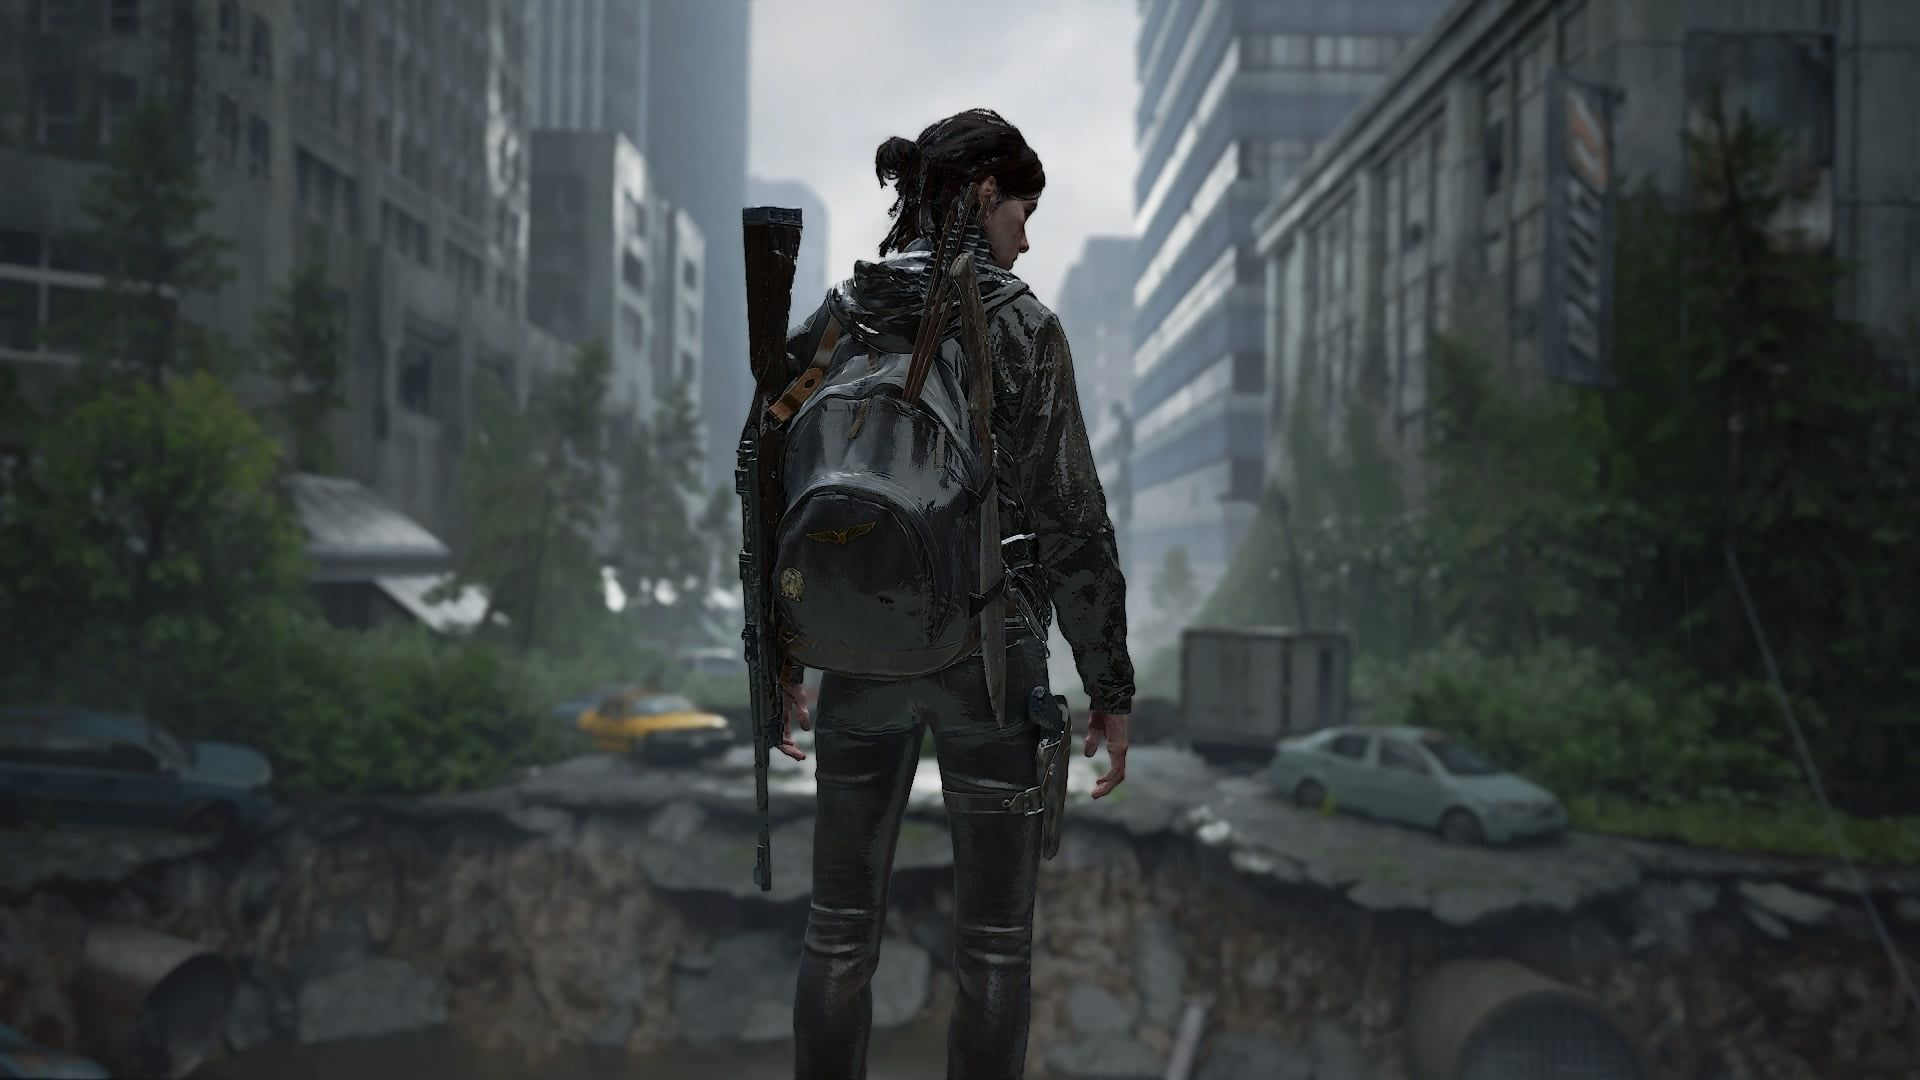 Pin On The Last Of Us2